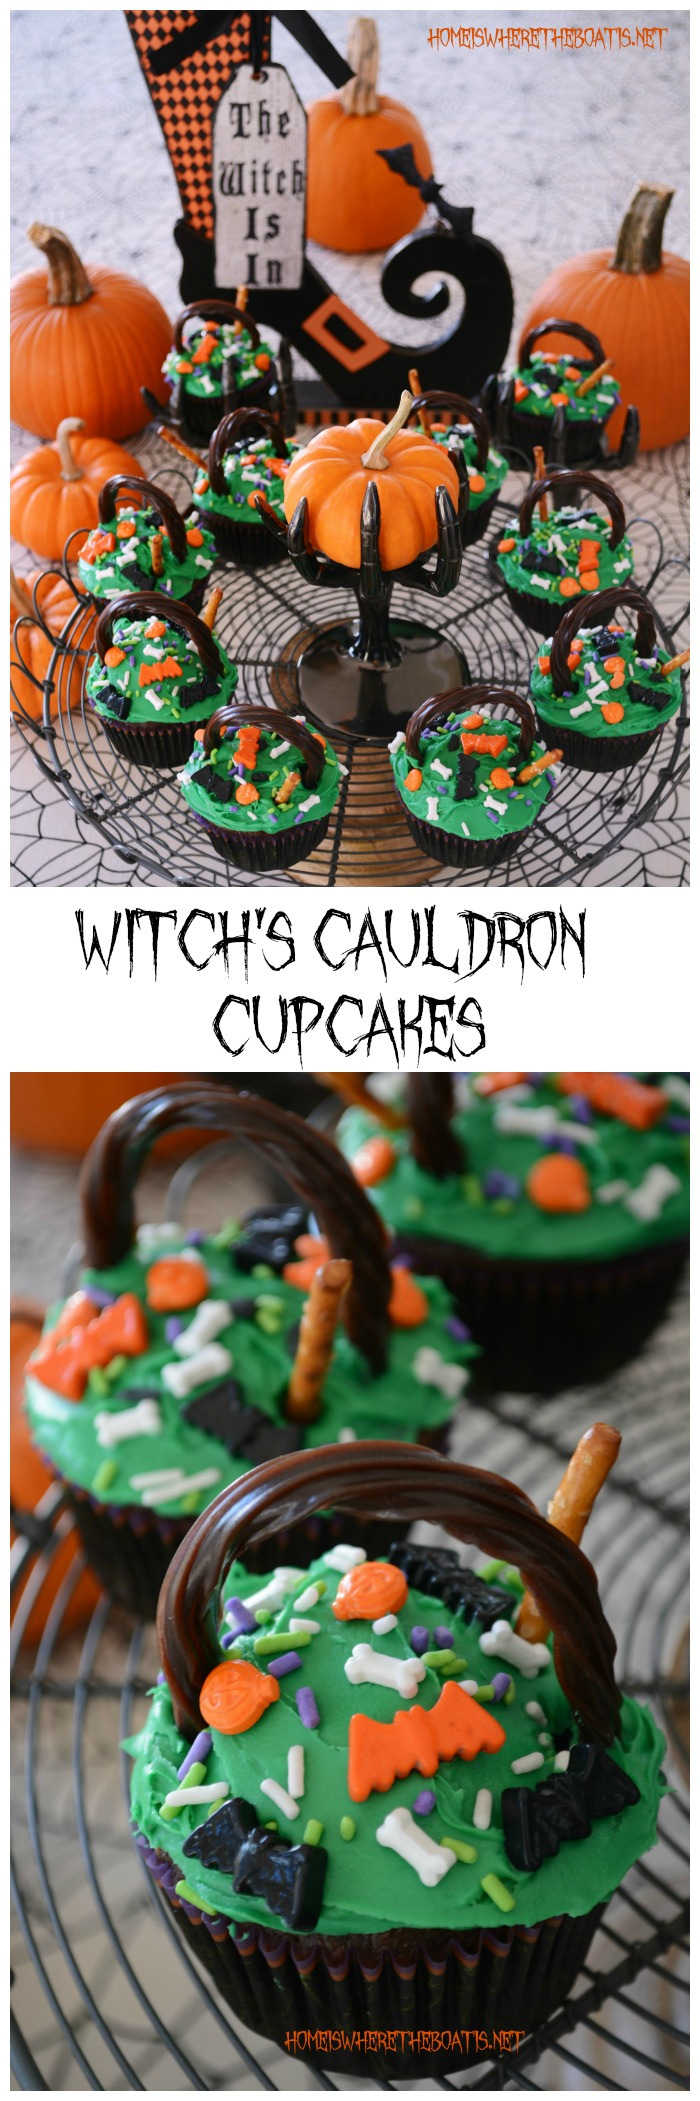 Halloween Witch's Cauldron Cupcakes